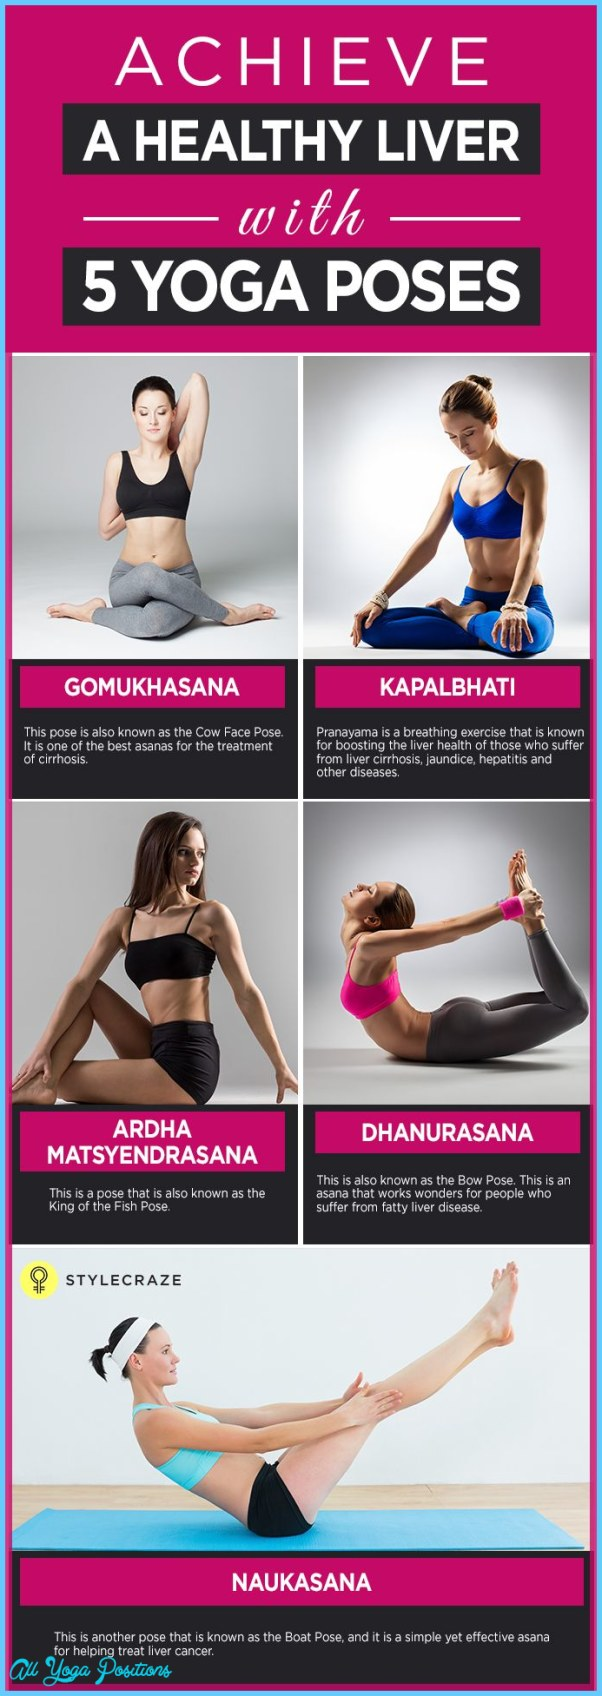 10 Simple Yoga Poses That Work Wonders for Musicians_14.jpg